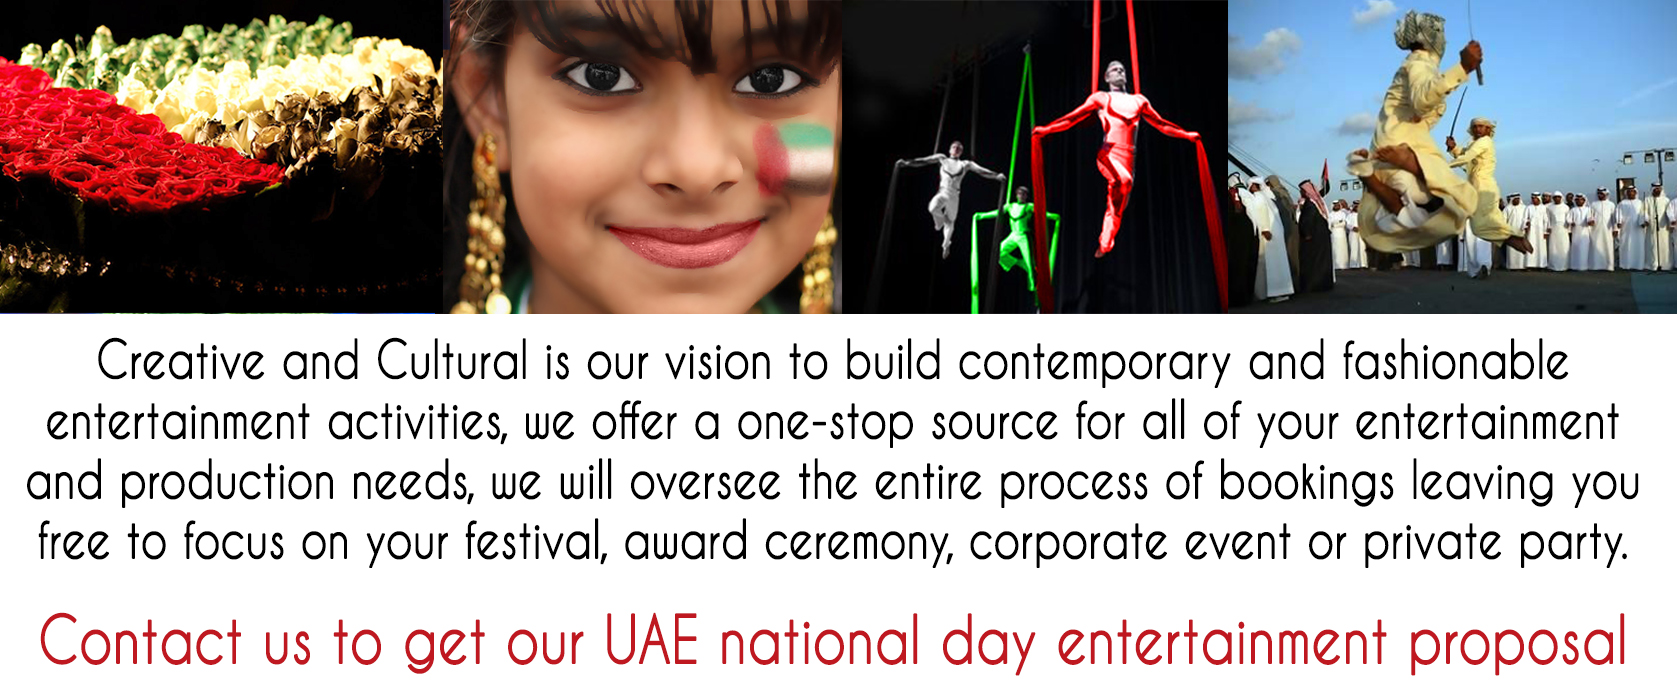 44TH UAE National Day Entertainment